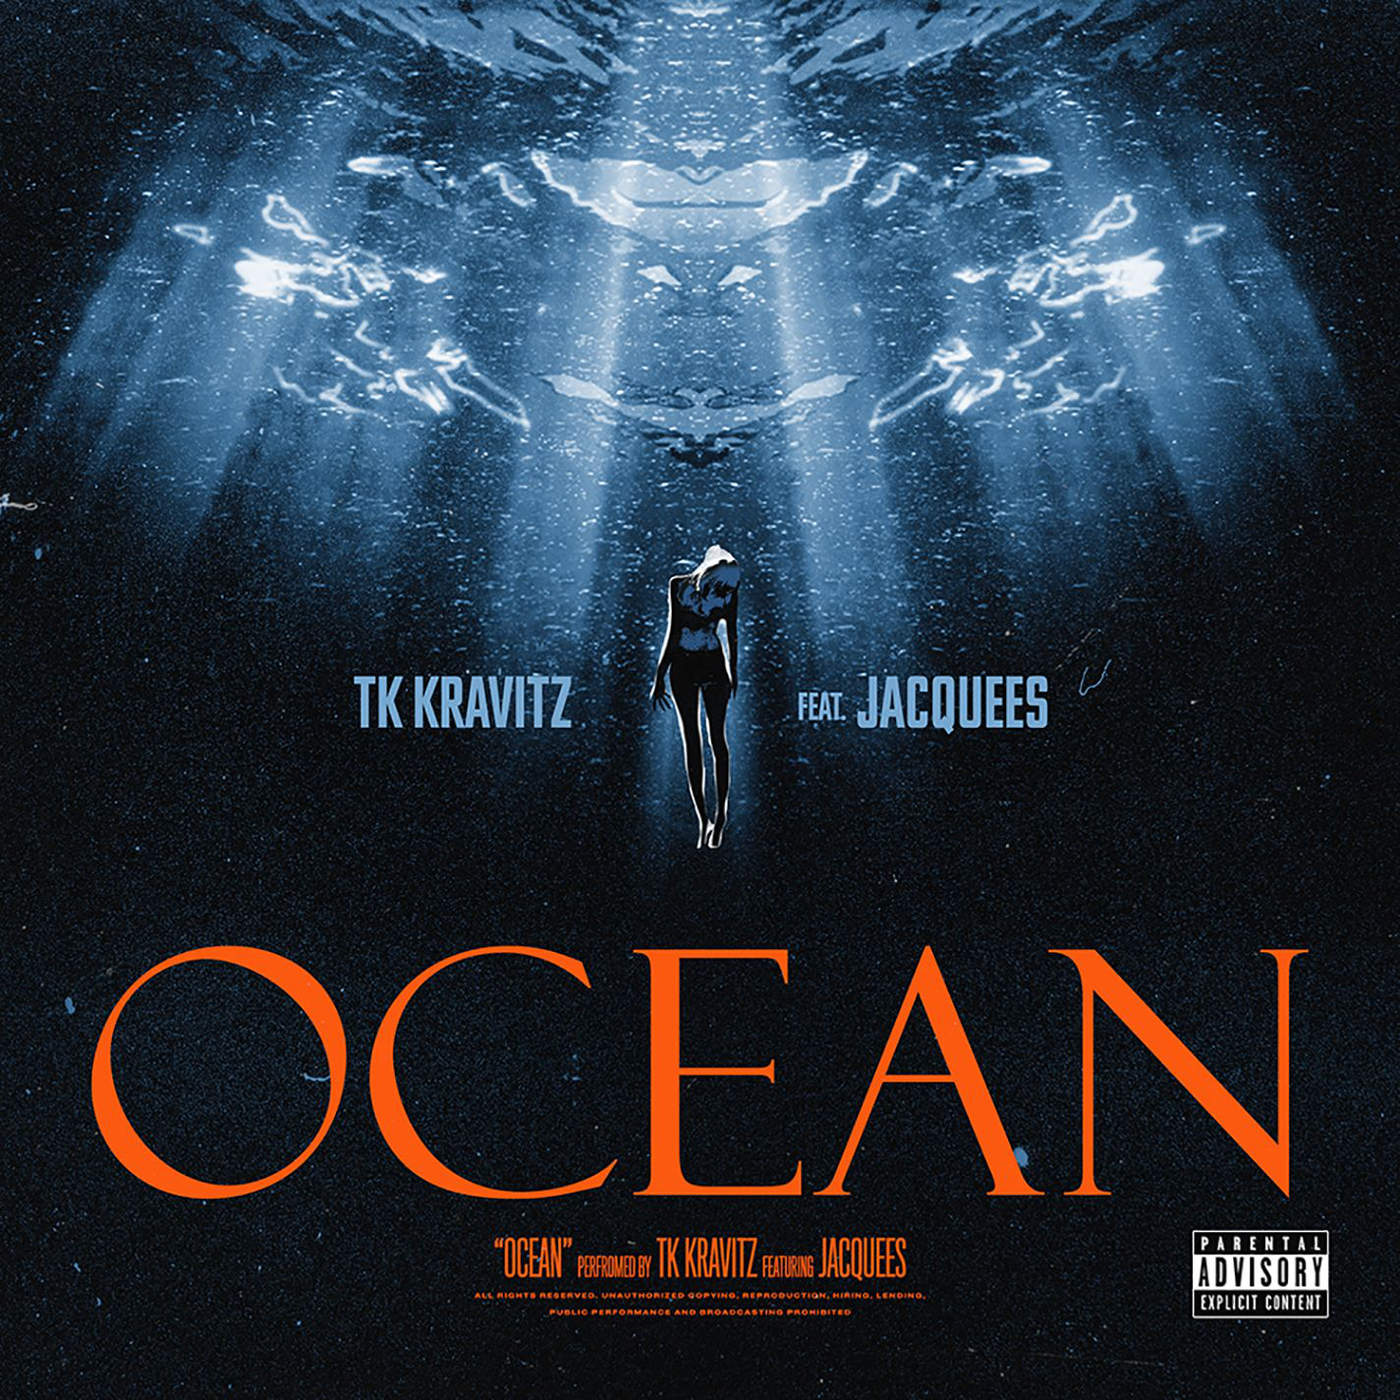 TK Kravitz - Ocean (feat. Jacquees) - Single Cover